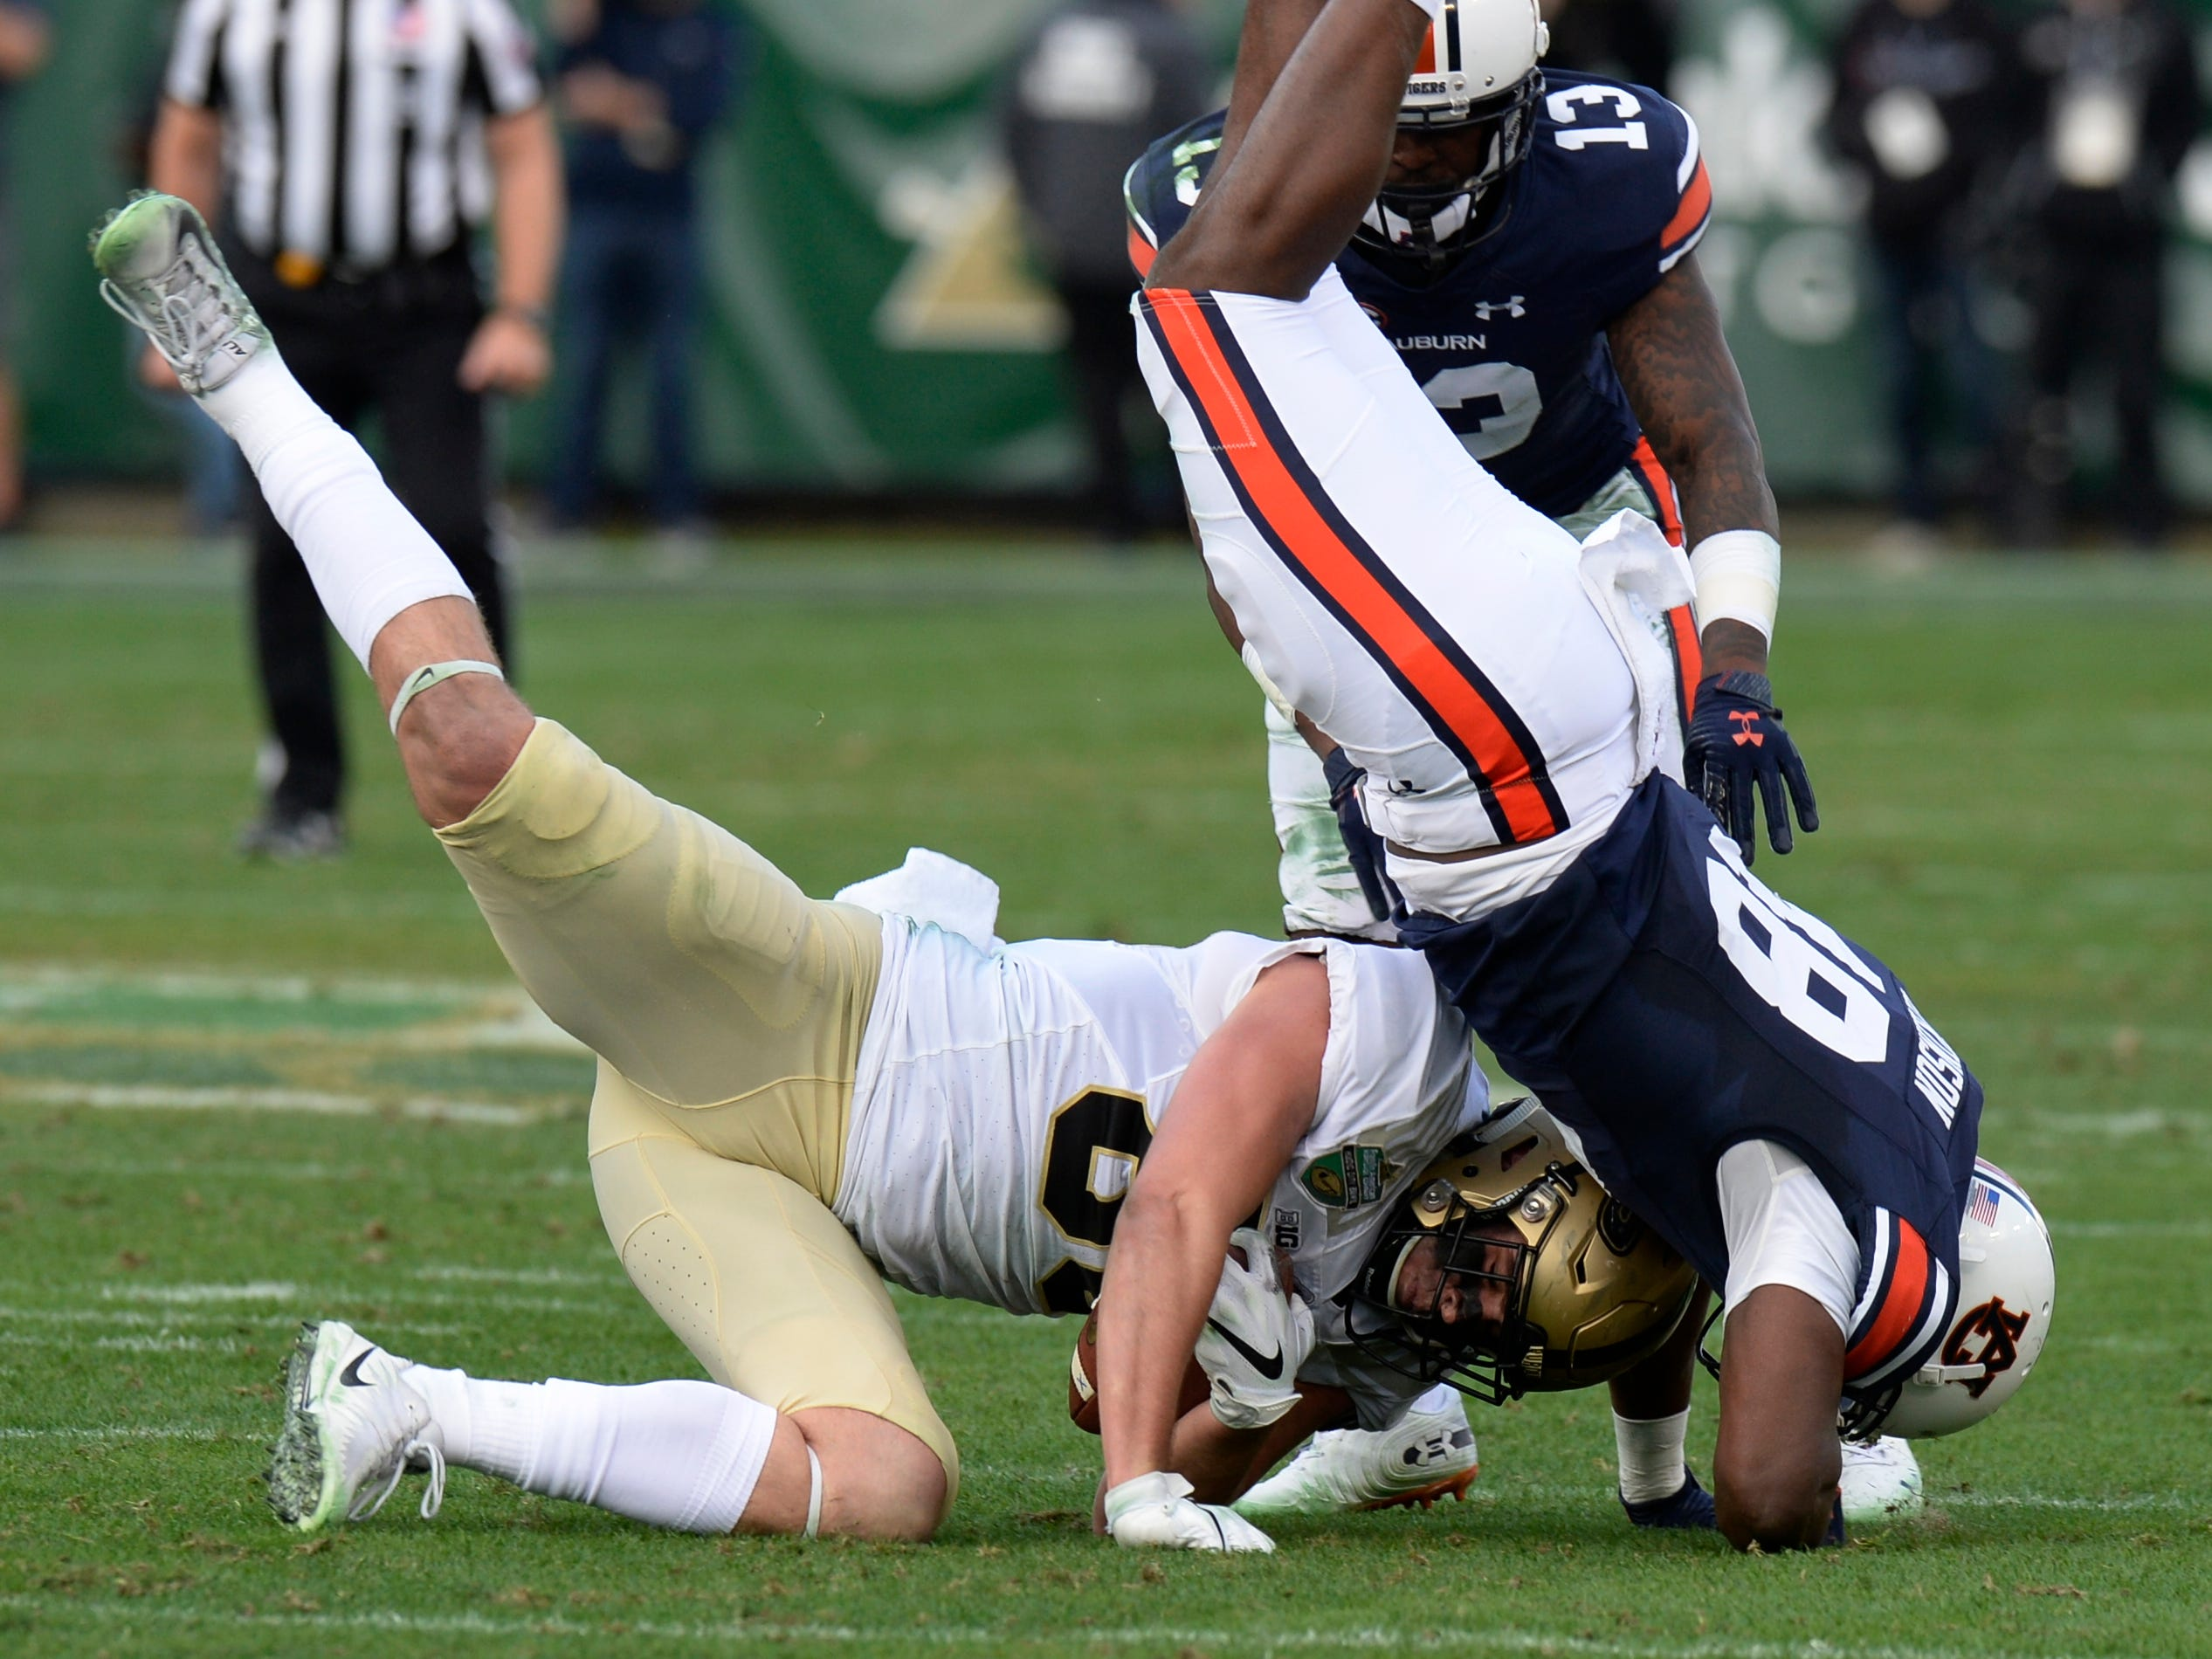 Purdue tight end Brycen Hopkins (89) catches a pass as he is tackled by Auburn linebacker Montavious Atkinson (48) in the second quarter of the Music City Bowl NCAA college football game Friday, Dec. 28, 2018, at Nissan Stadium in Nashville, Tenn.